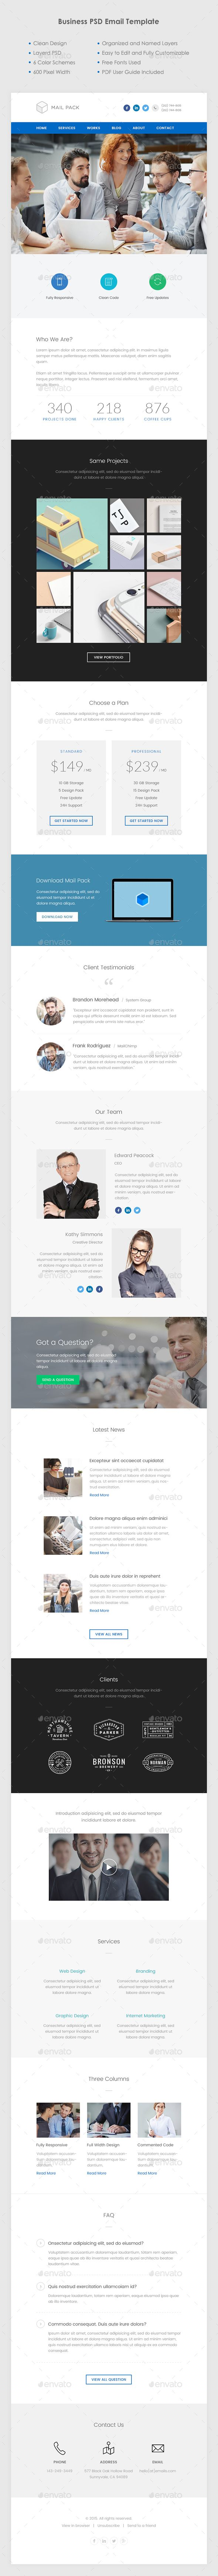 Business Email Template PSD. Download here: http://graphicriver.net/item/business-email-template-psd/13069441?ref=ksioks